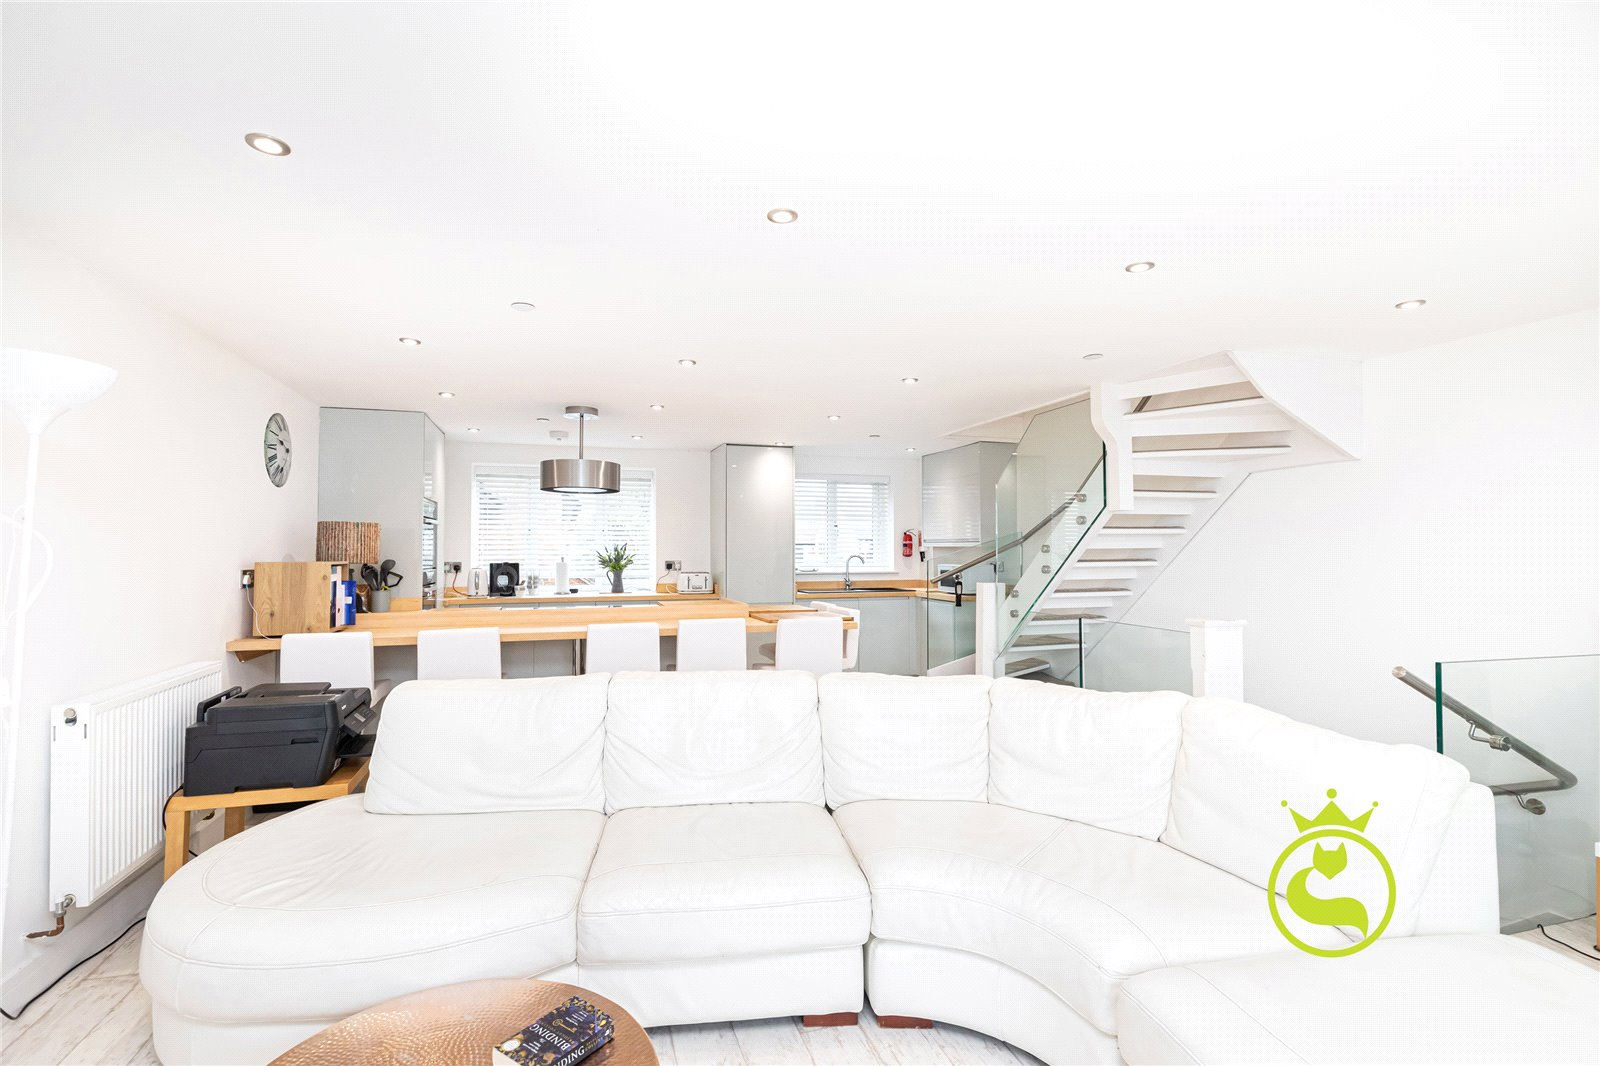 4 bed house to rent in Catalina Drive, Poole, BH15